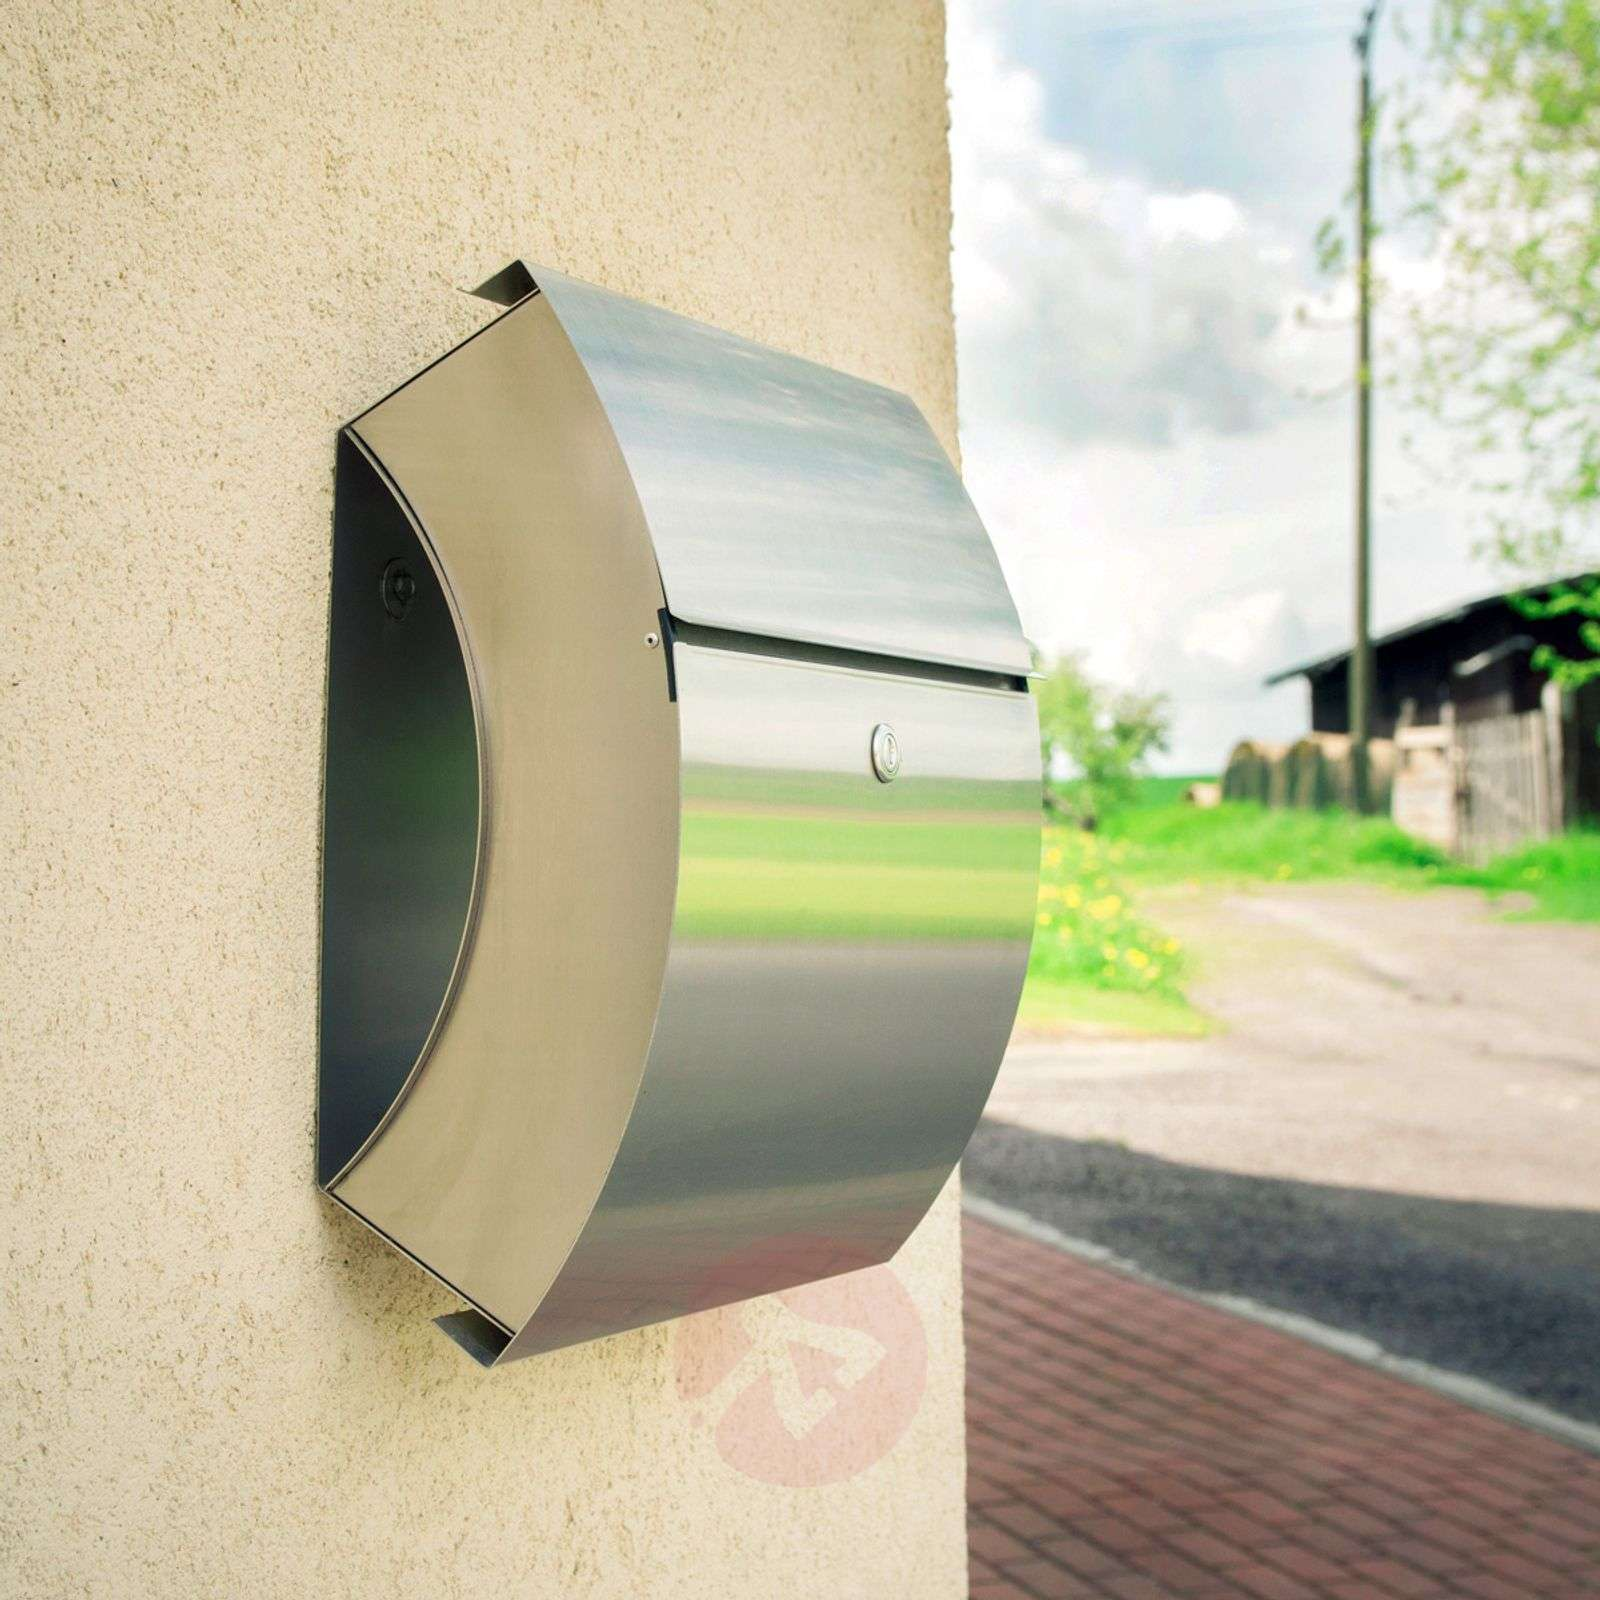 Santa Fe letterbox made of stainless steel-5540008-03